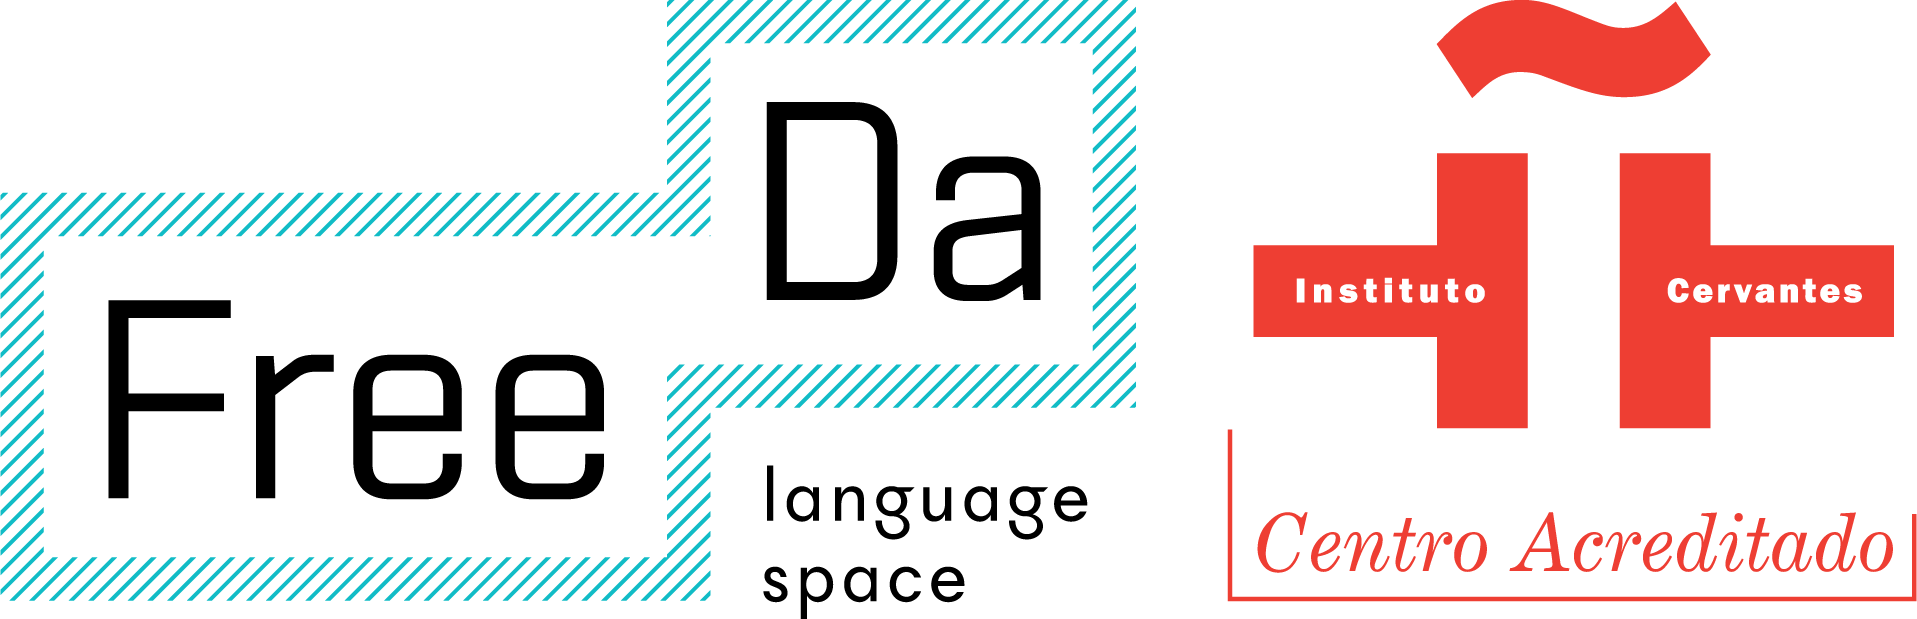 Freeda language space